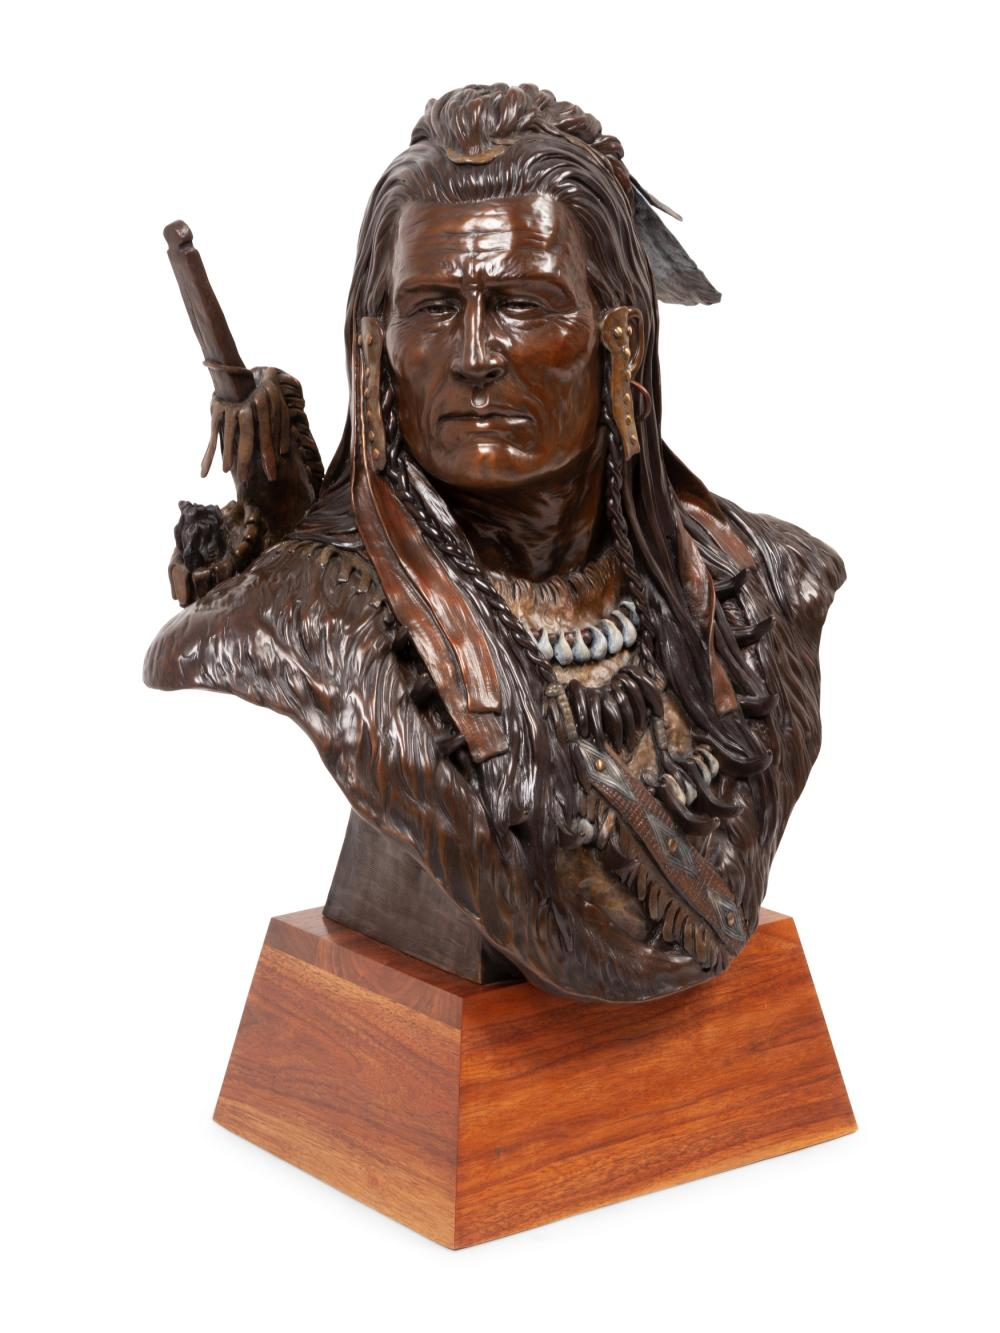 Terry Murphy (American, b. 1950) Bust of a Warrior, edition 33/36, 1993